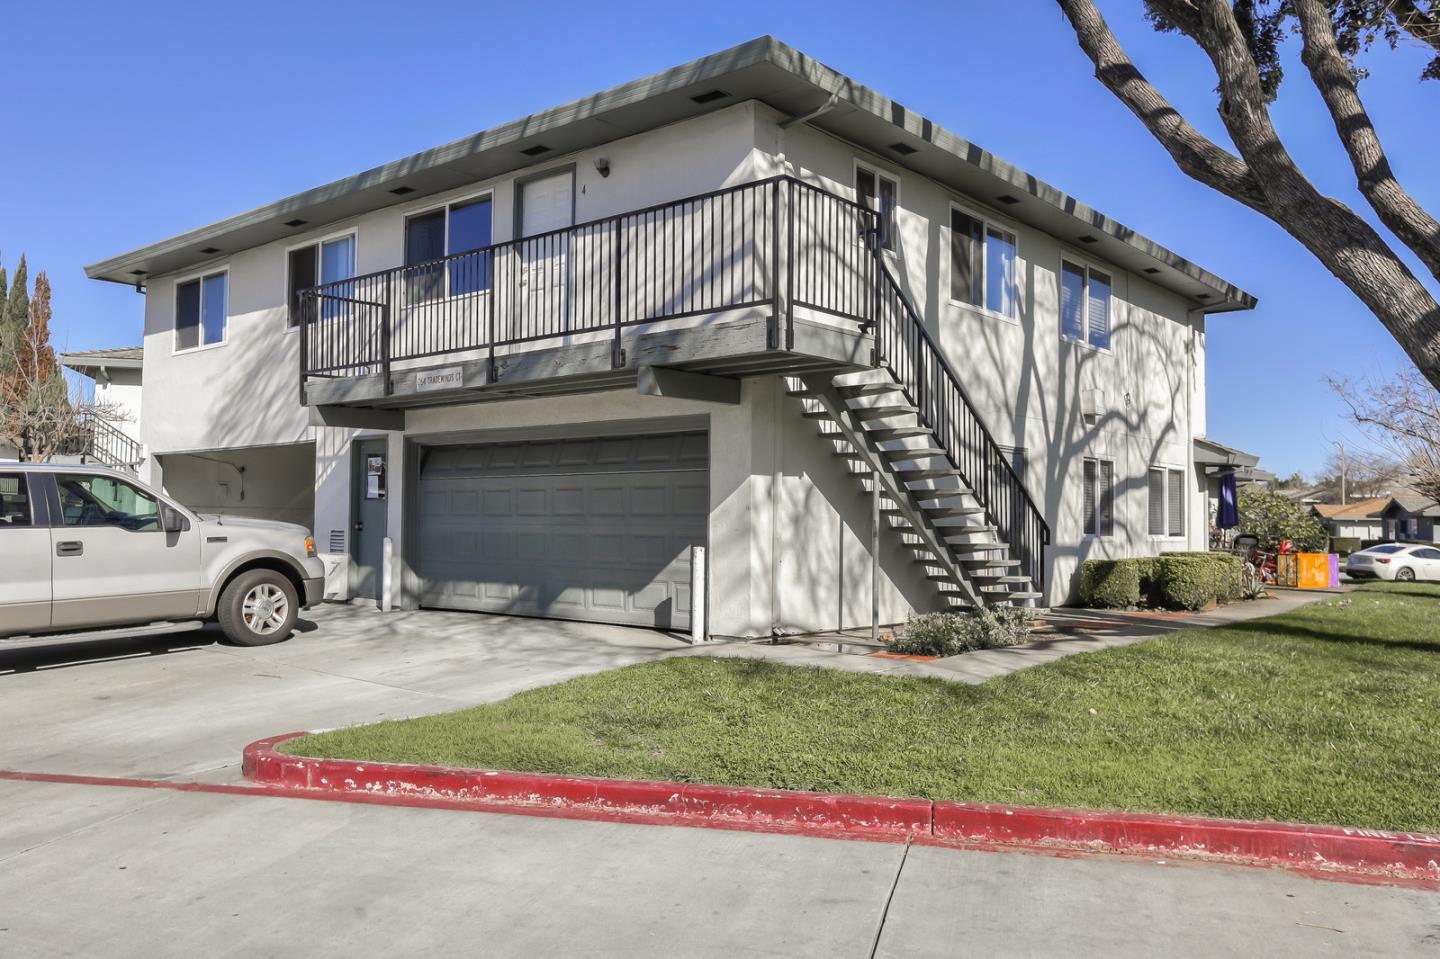 264 TRADEWINDS CT 4, SAN JOSE, CA 95123